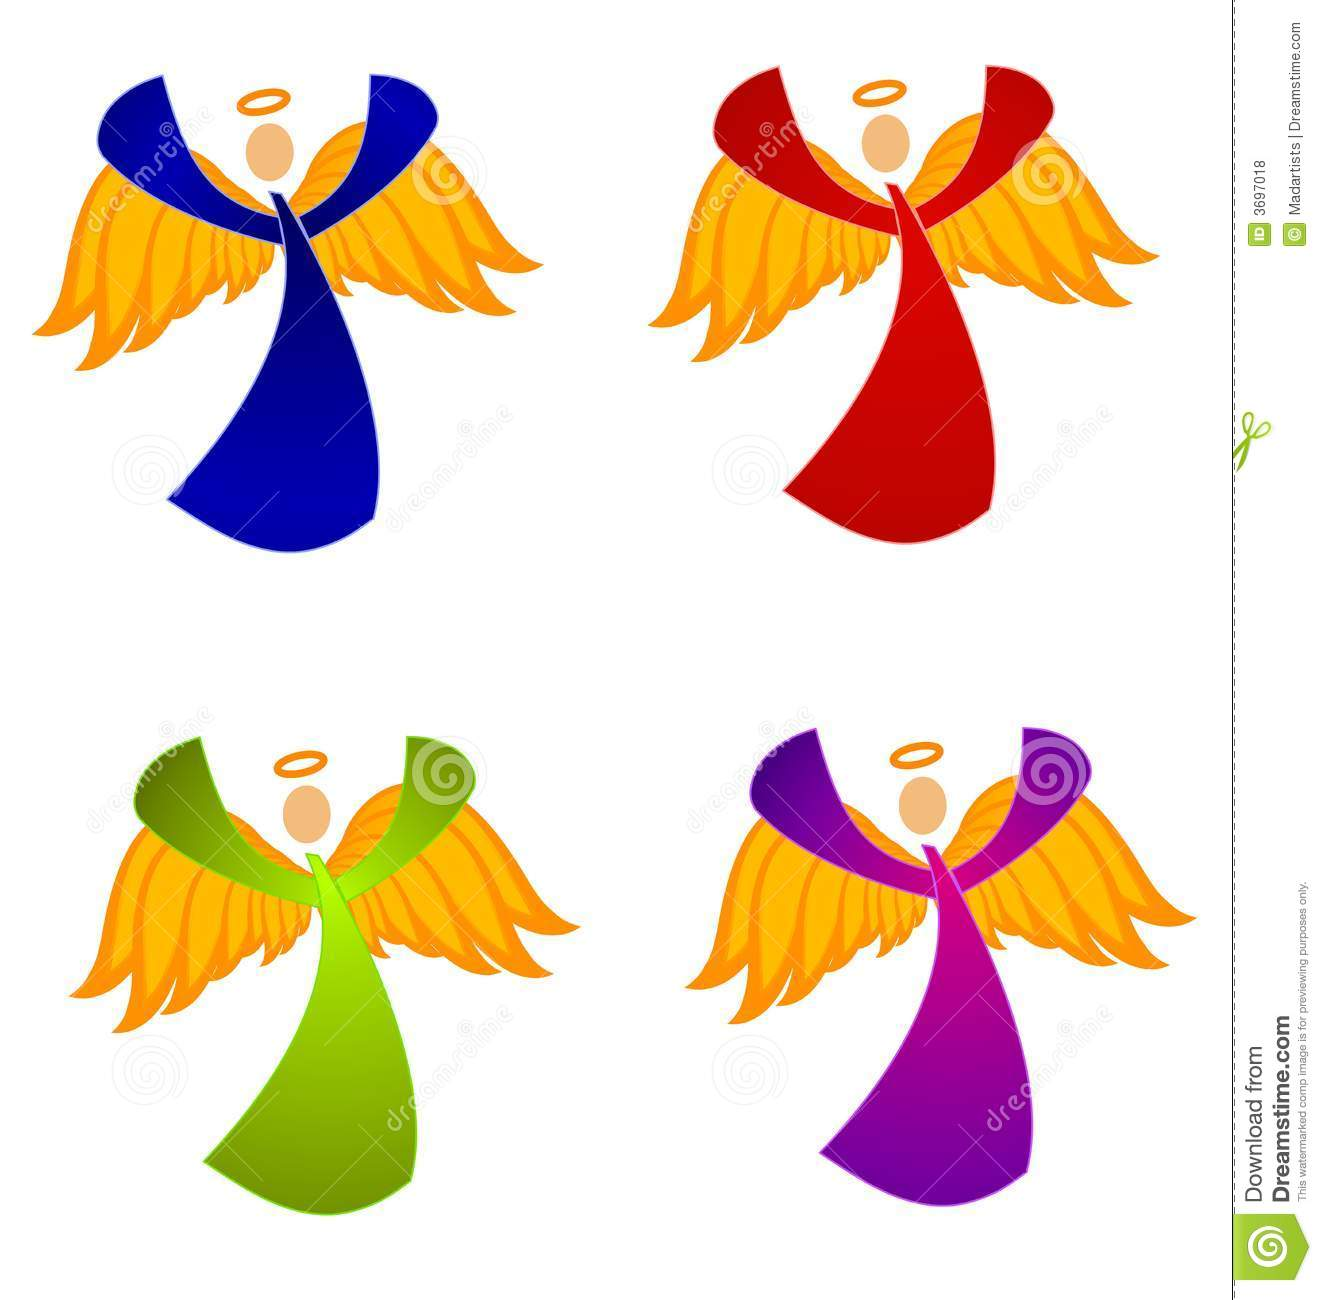 variety of christmas angels clip art stock illustration rh dreamstime com angel clipart photos angel clipart free download